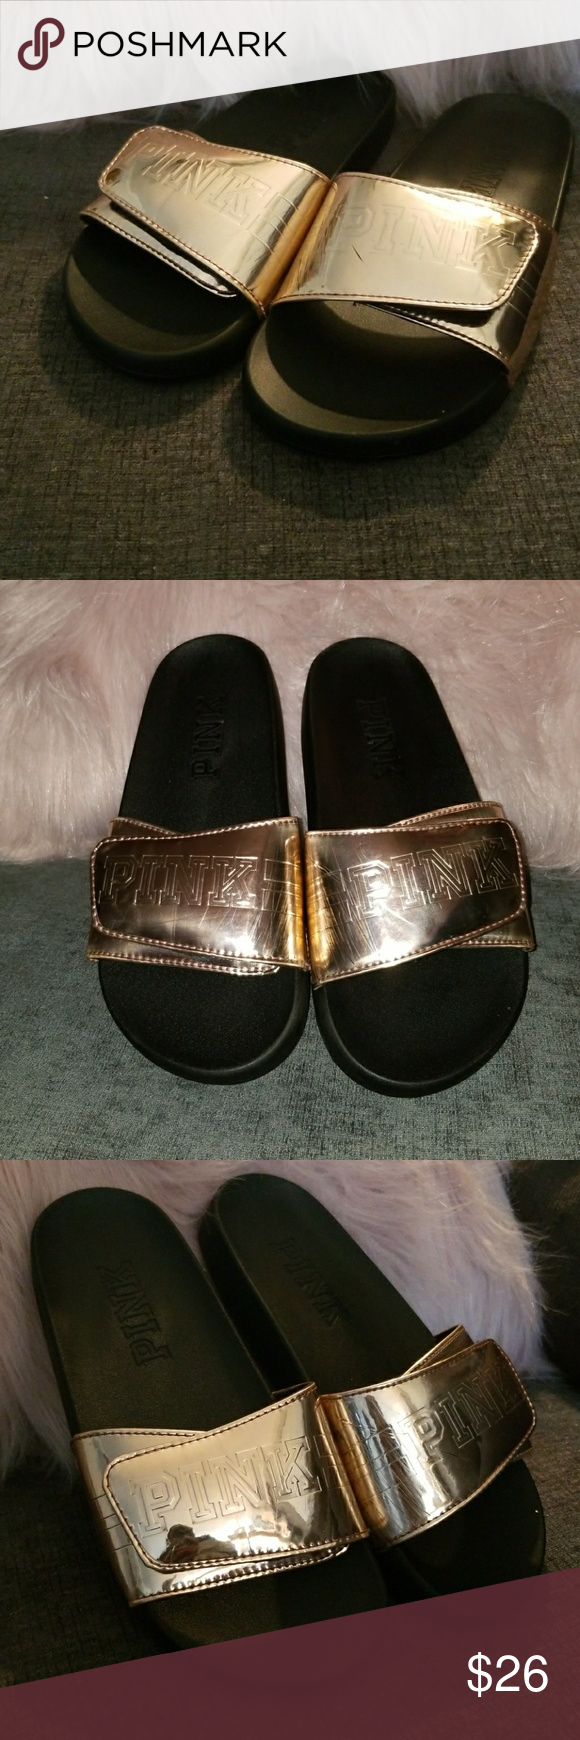 b2b2362dc968 Victoria s Secret slides Victoria s Secret rose gold slip on slides PINK  LOGO WITH ADJUSTABLE STRAPS ROSE